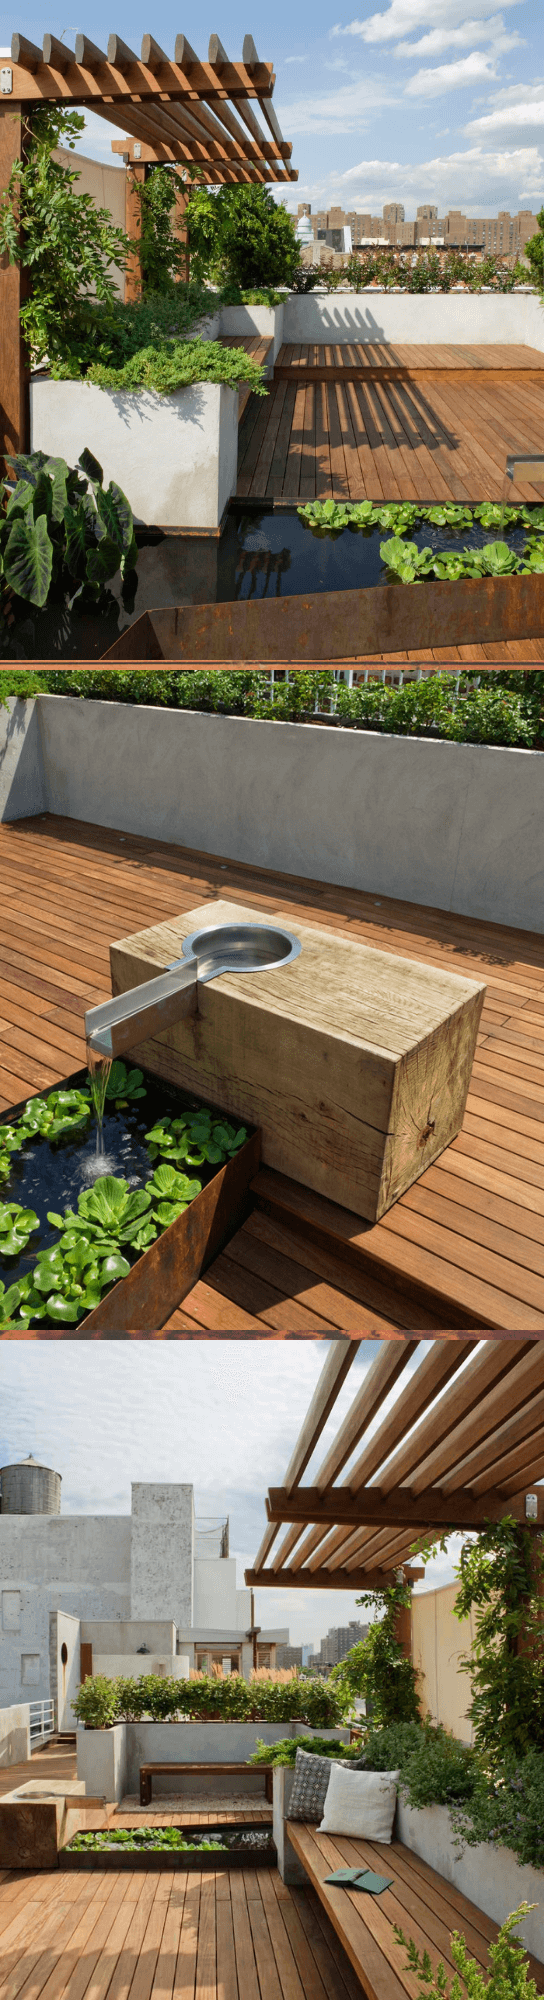 A traditional full sun rooftop water fountain landscape